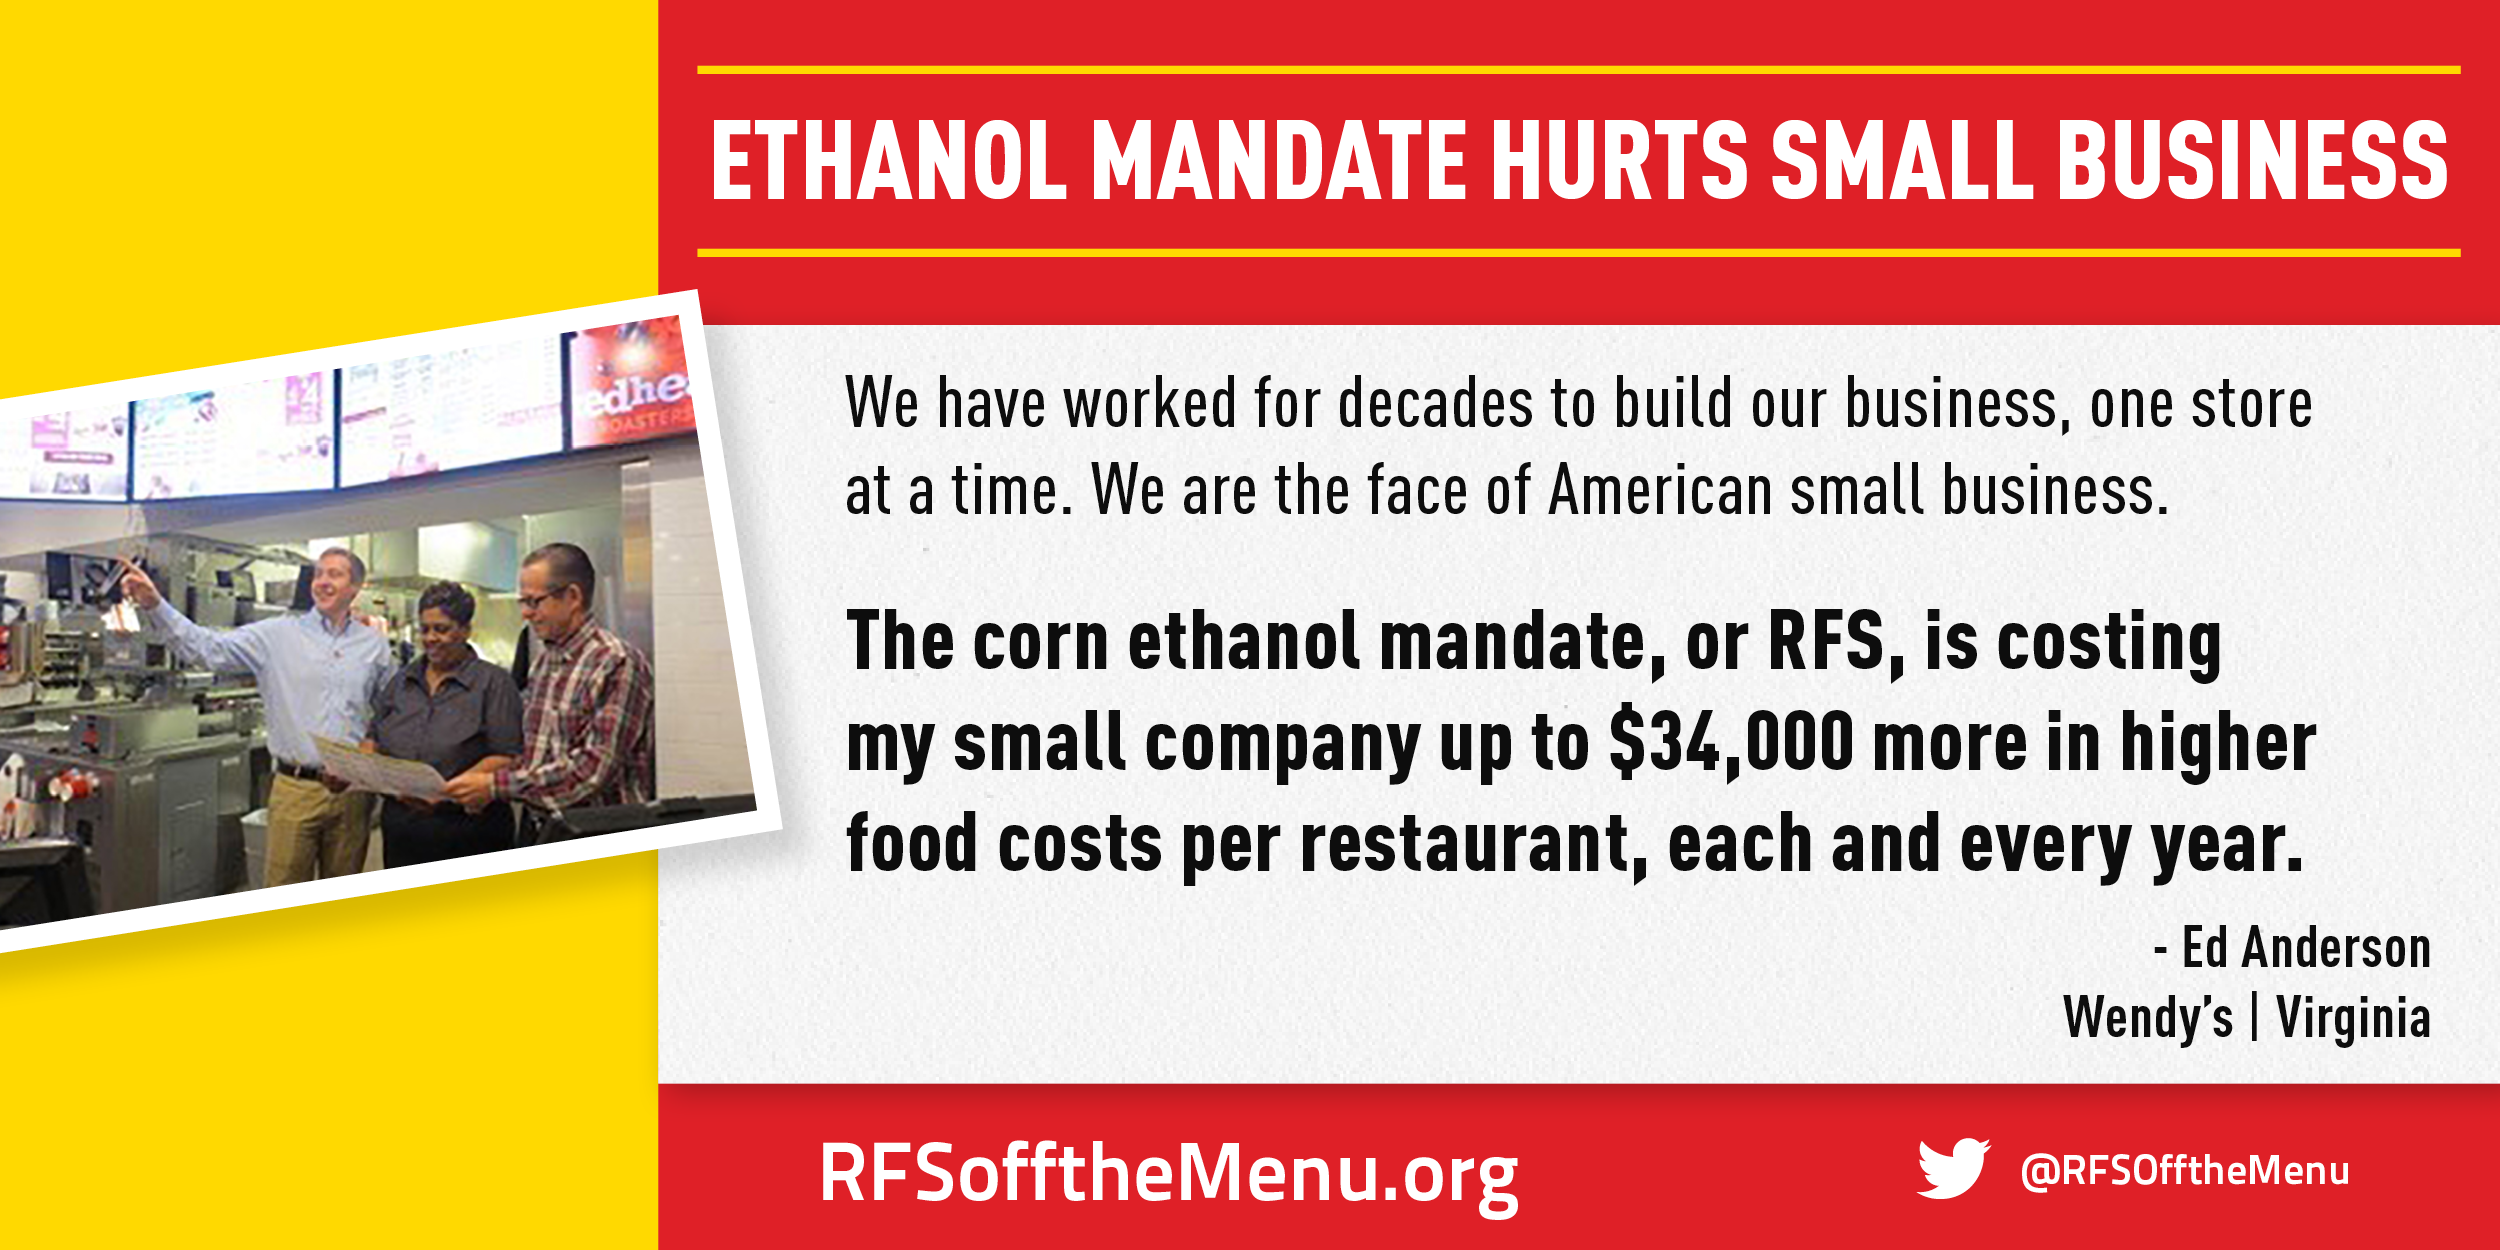 Ethanol Mandate Hurts Small Business - Read Ed Anderson's Story